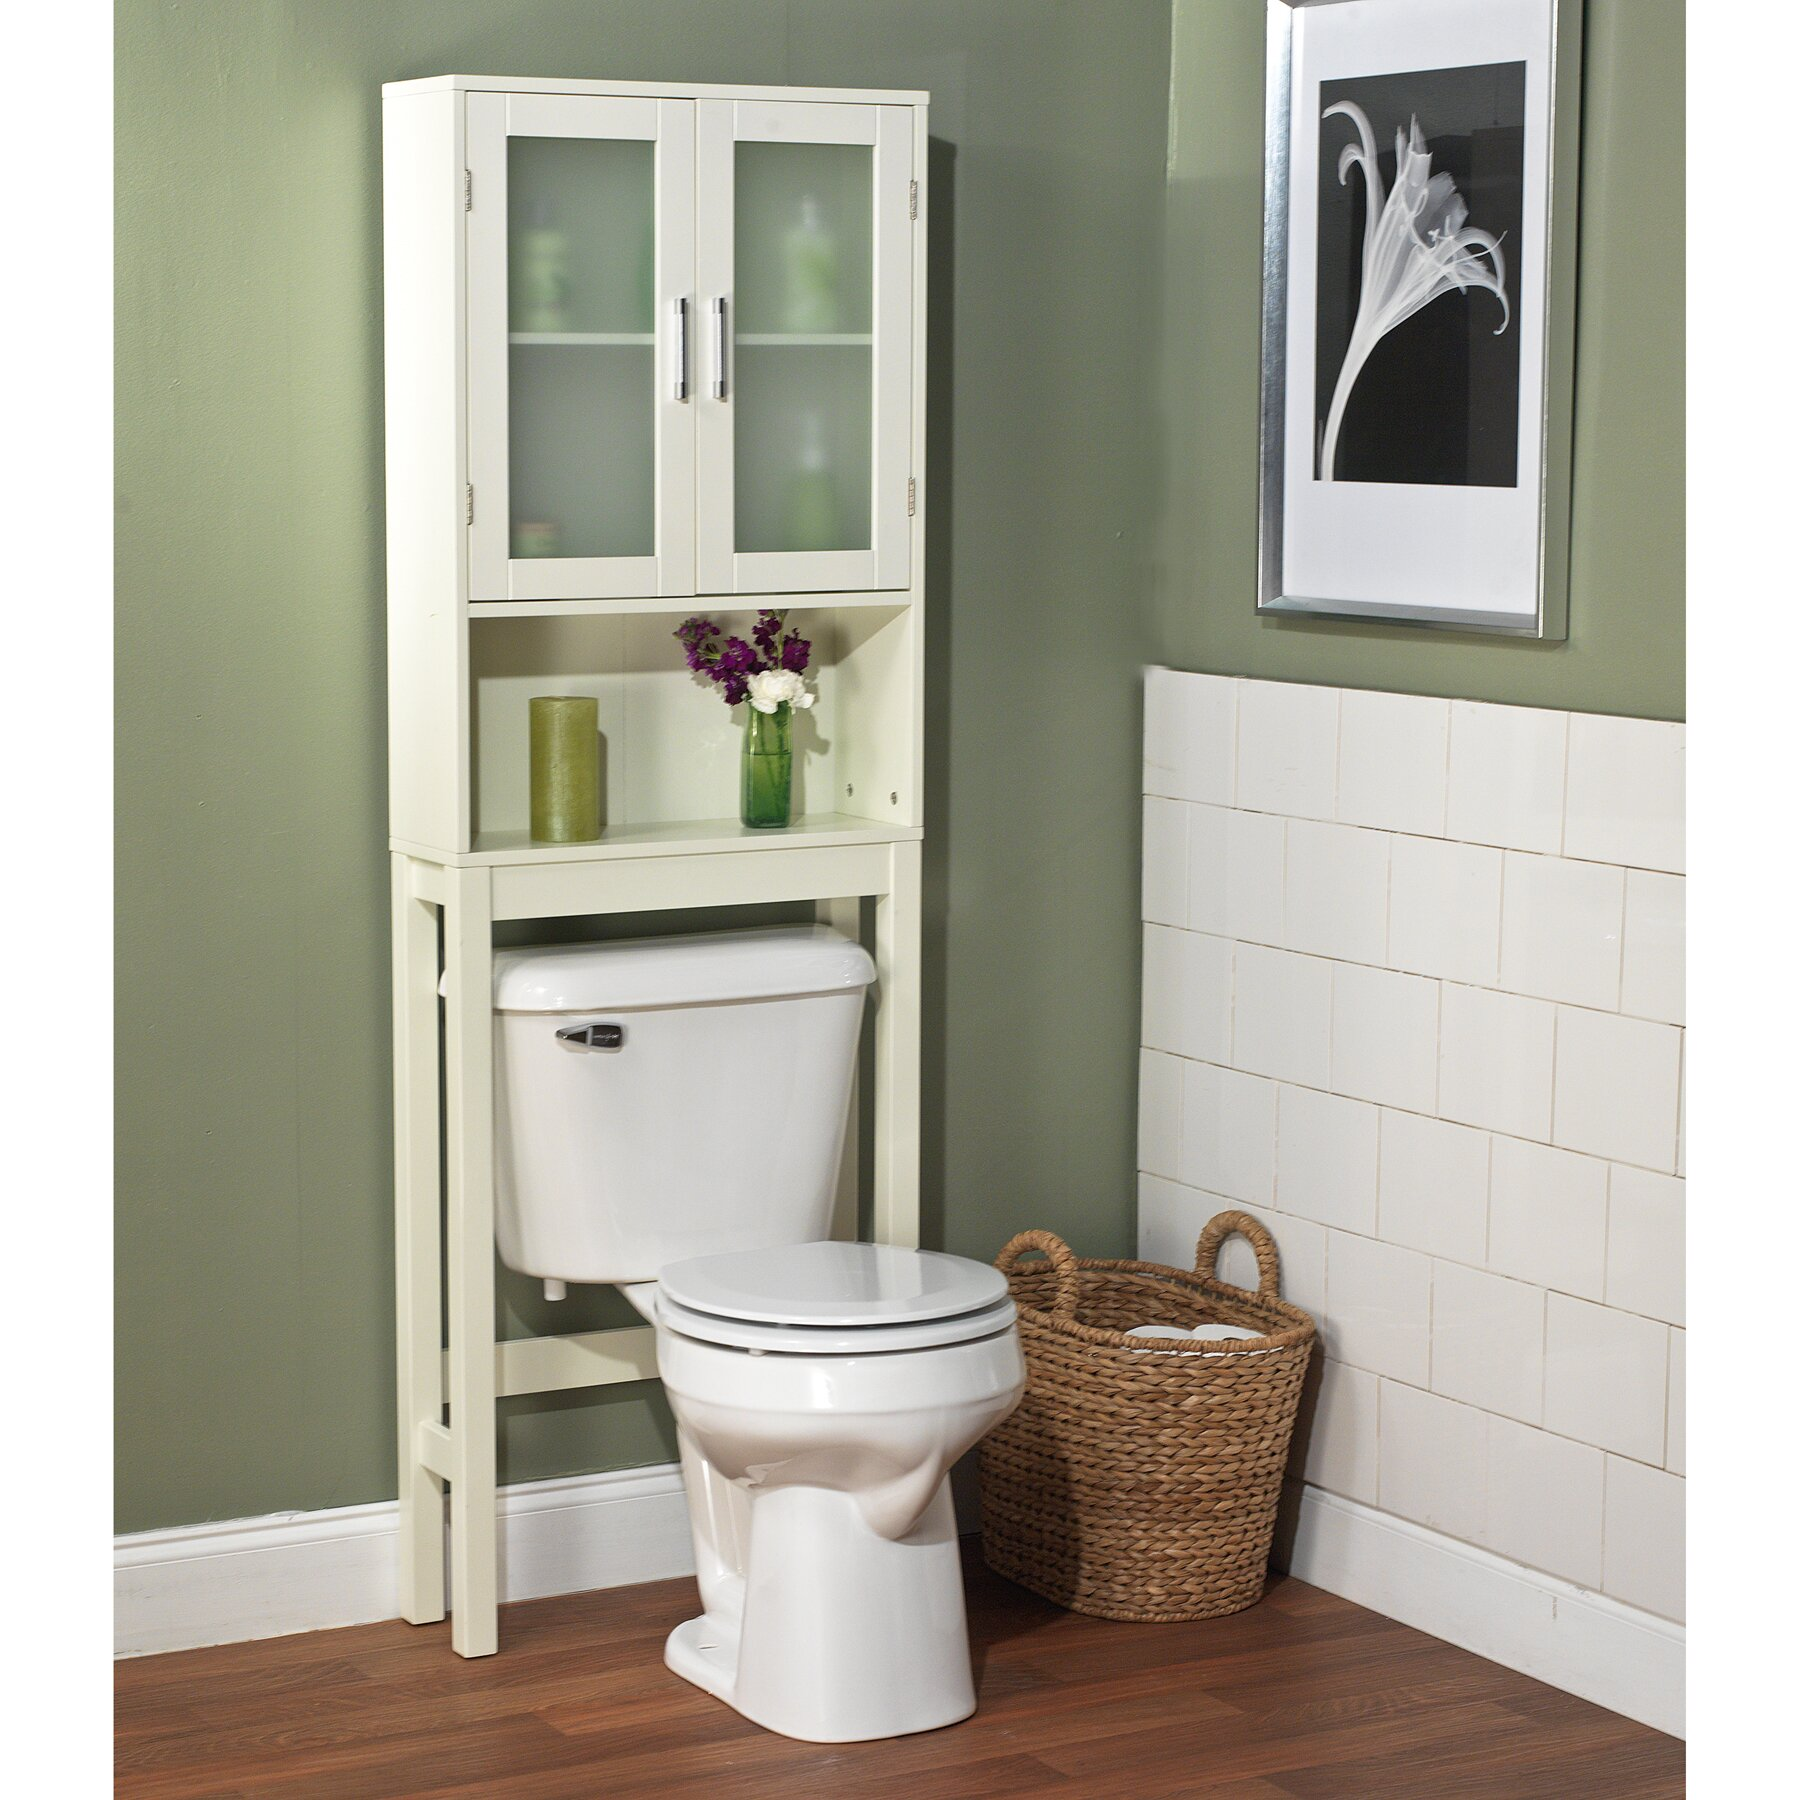 w h the quick over x cabinets rebrilliant value my storage toilet web view bathroom cabinet